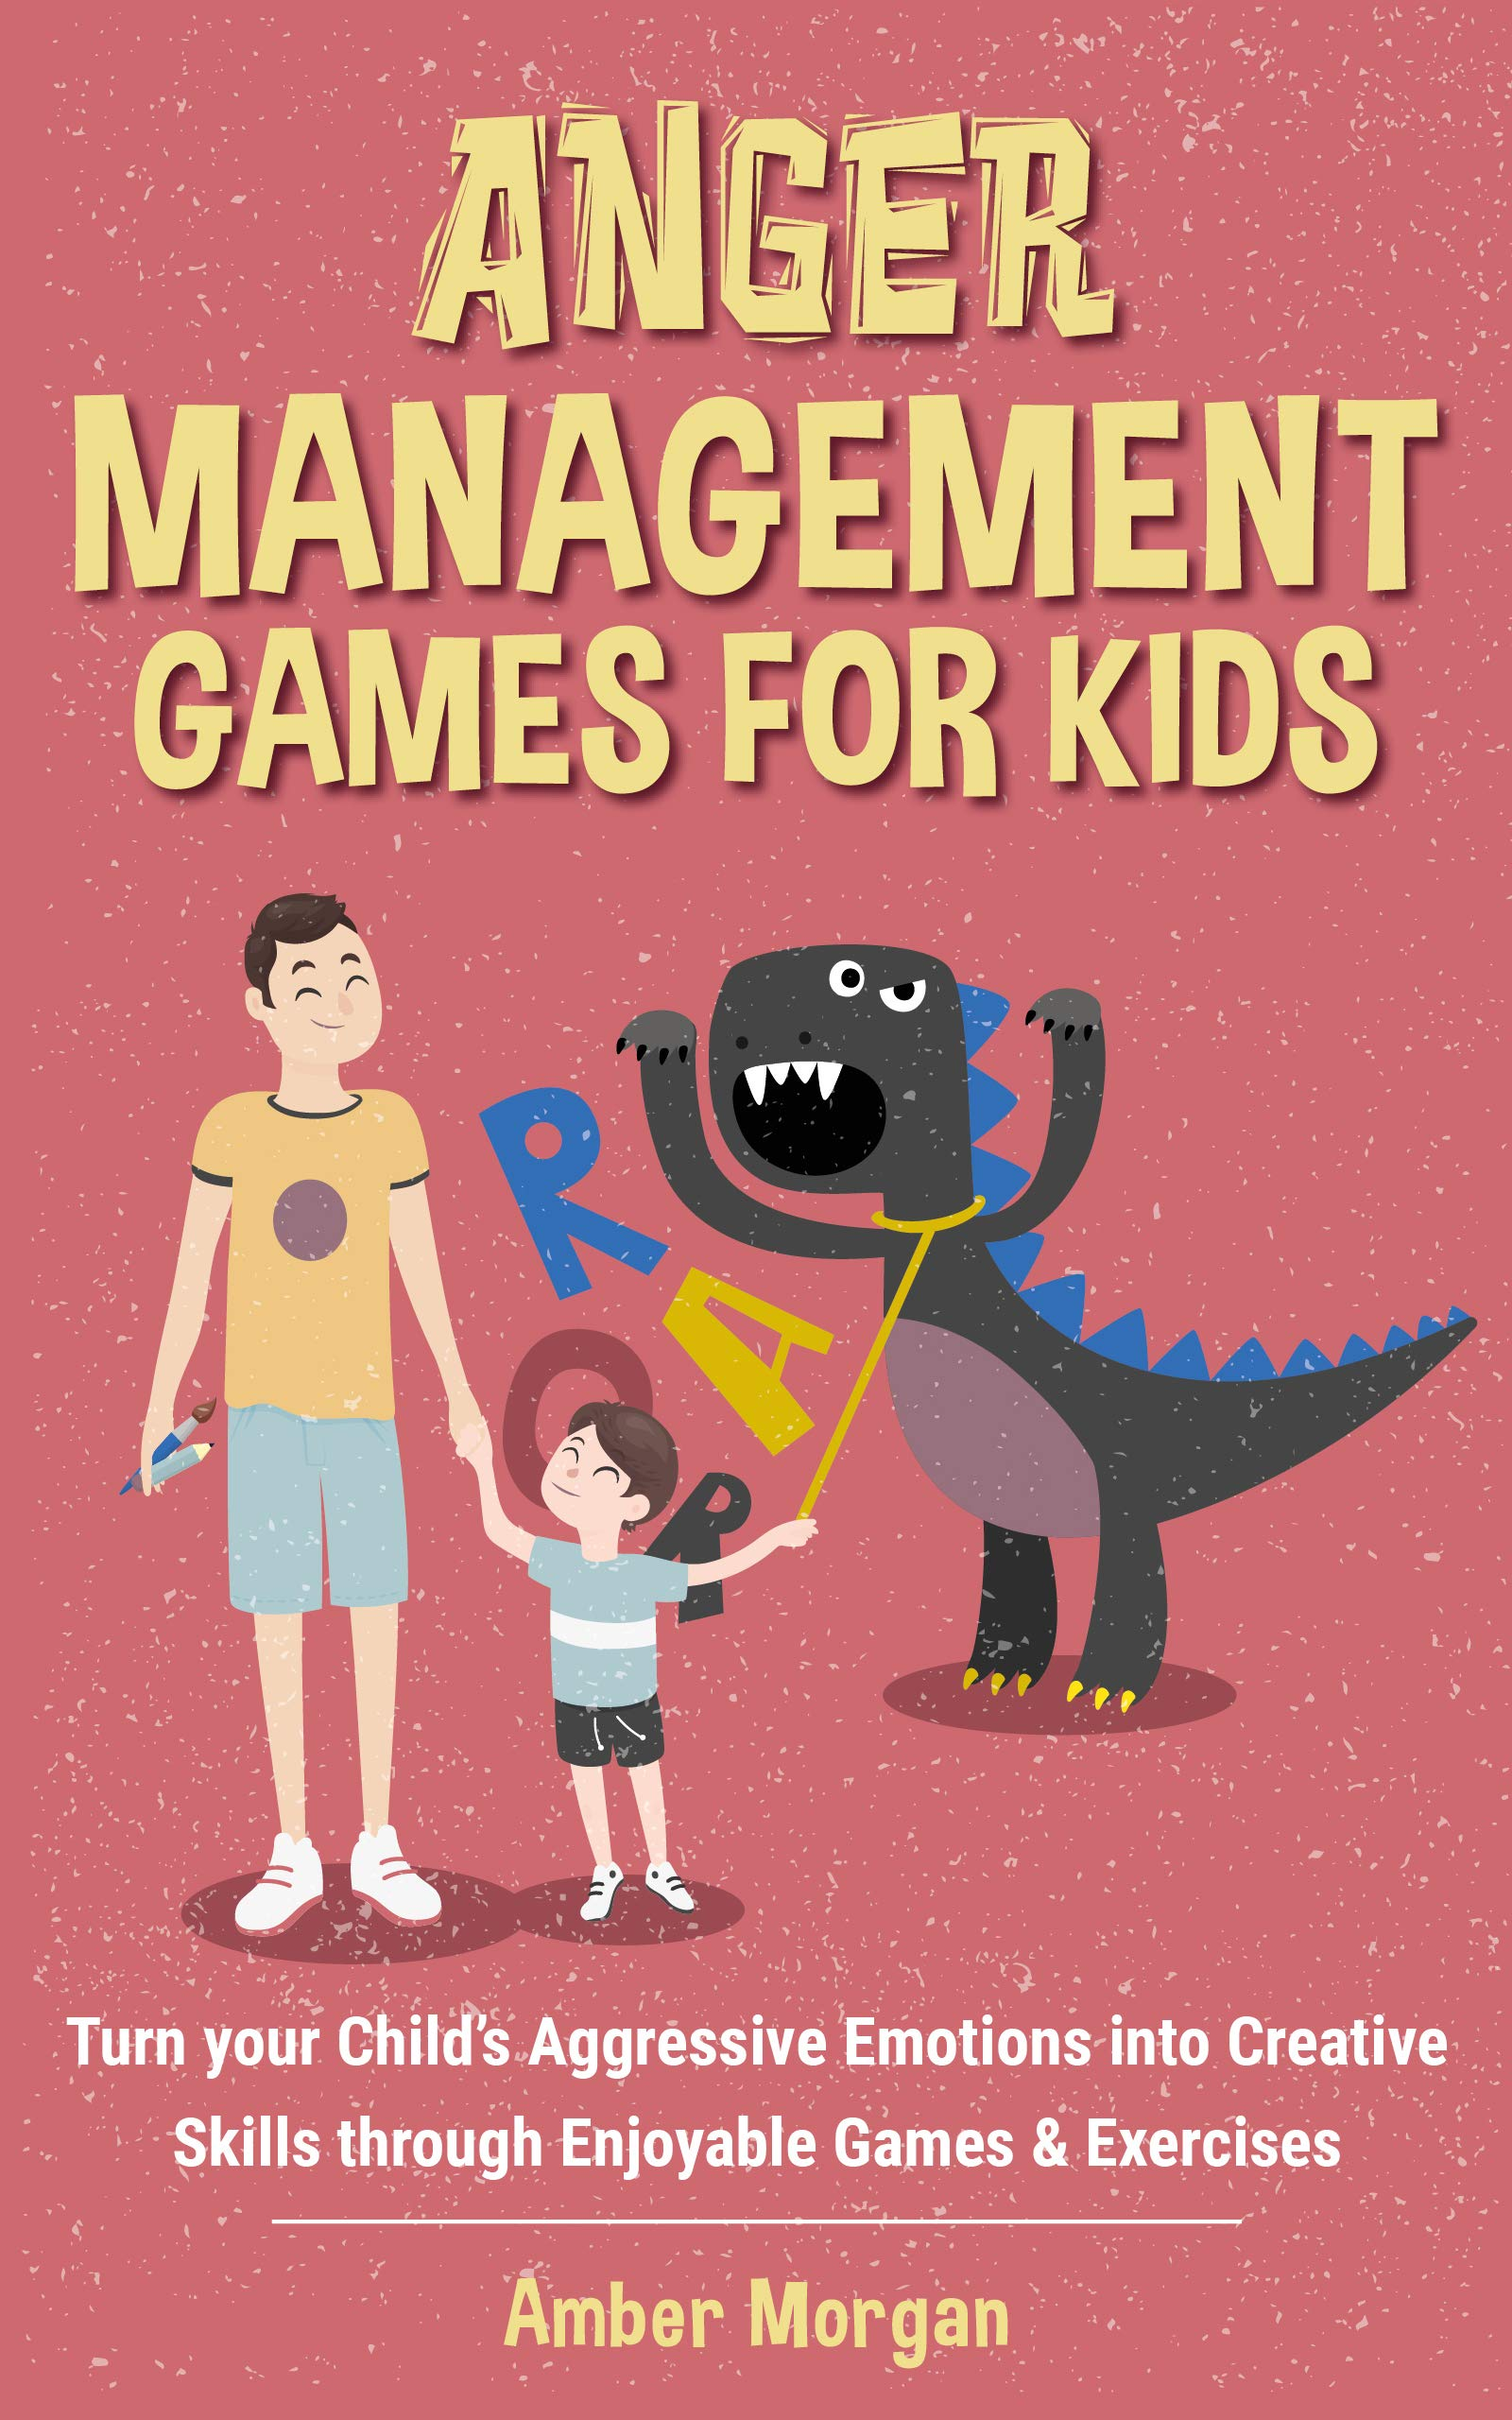 Anger Management Games For Kids: Turn your Child's Aggressive Emotions into Creative Skills through Enjoyable Games & Exercises